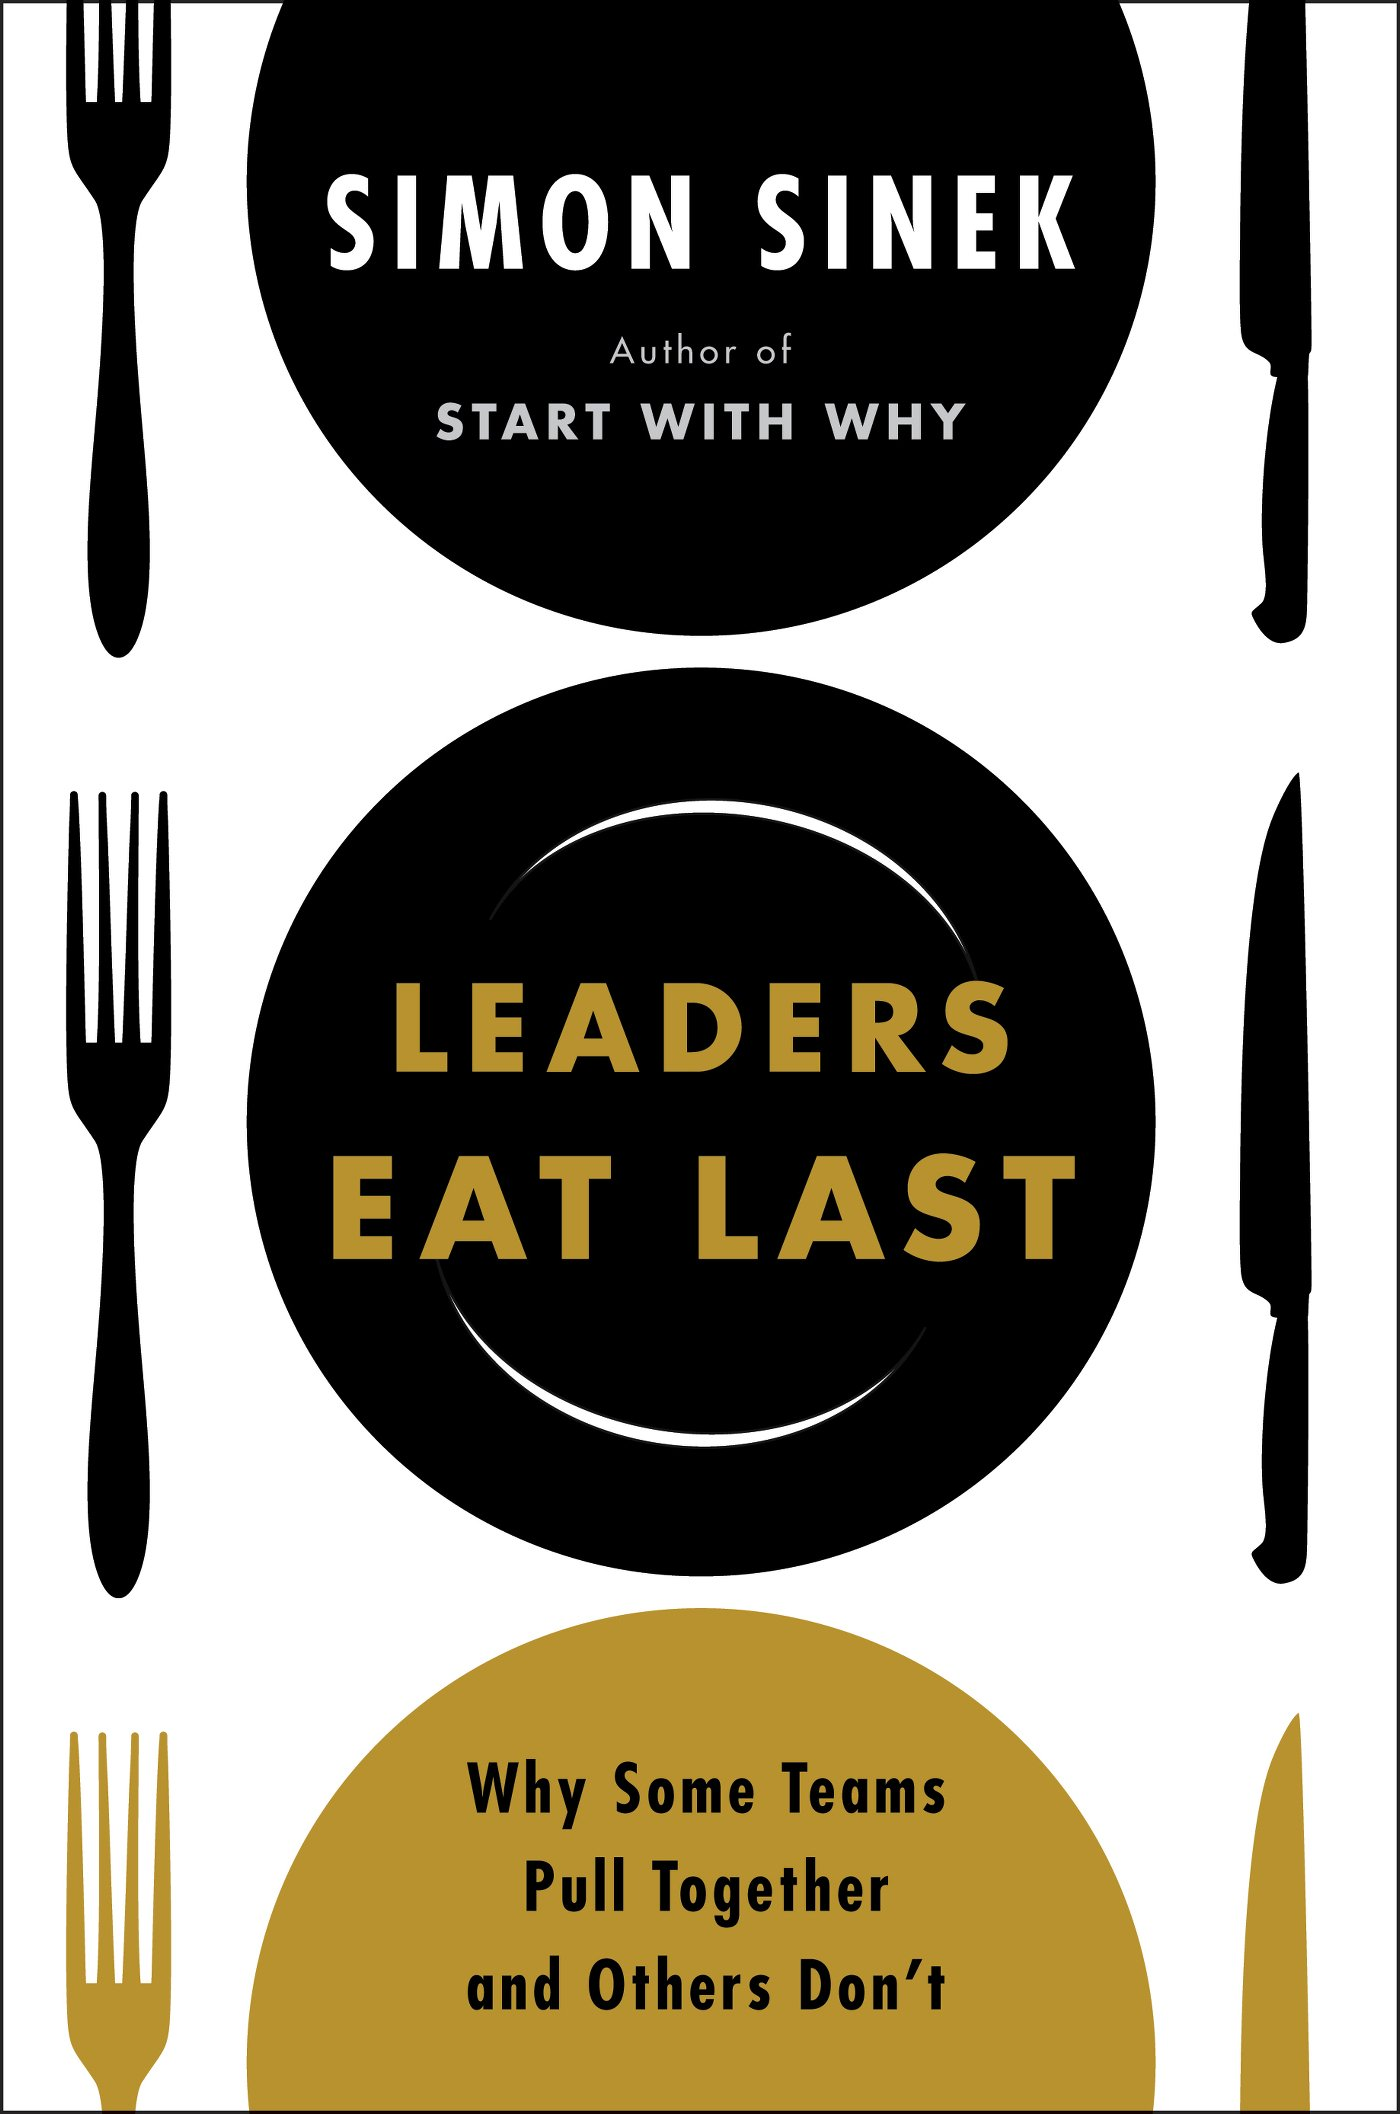 leaders eat last by simon sinek audio book summary